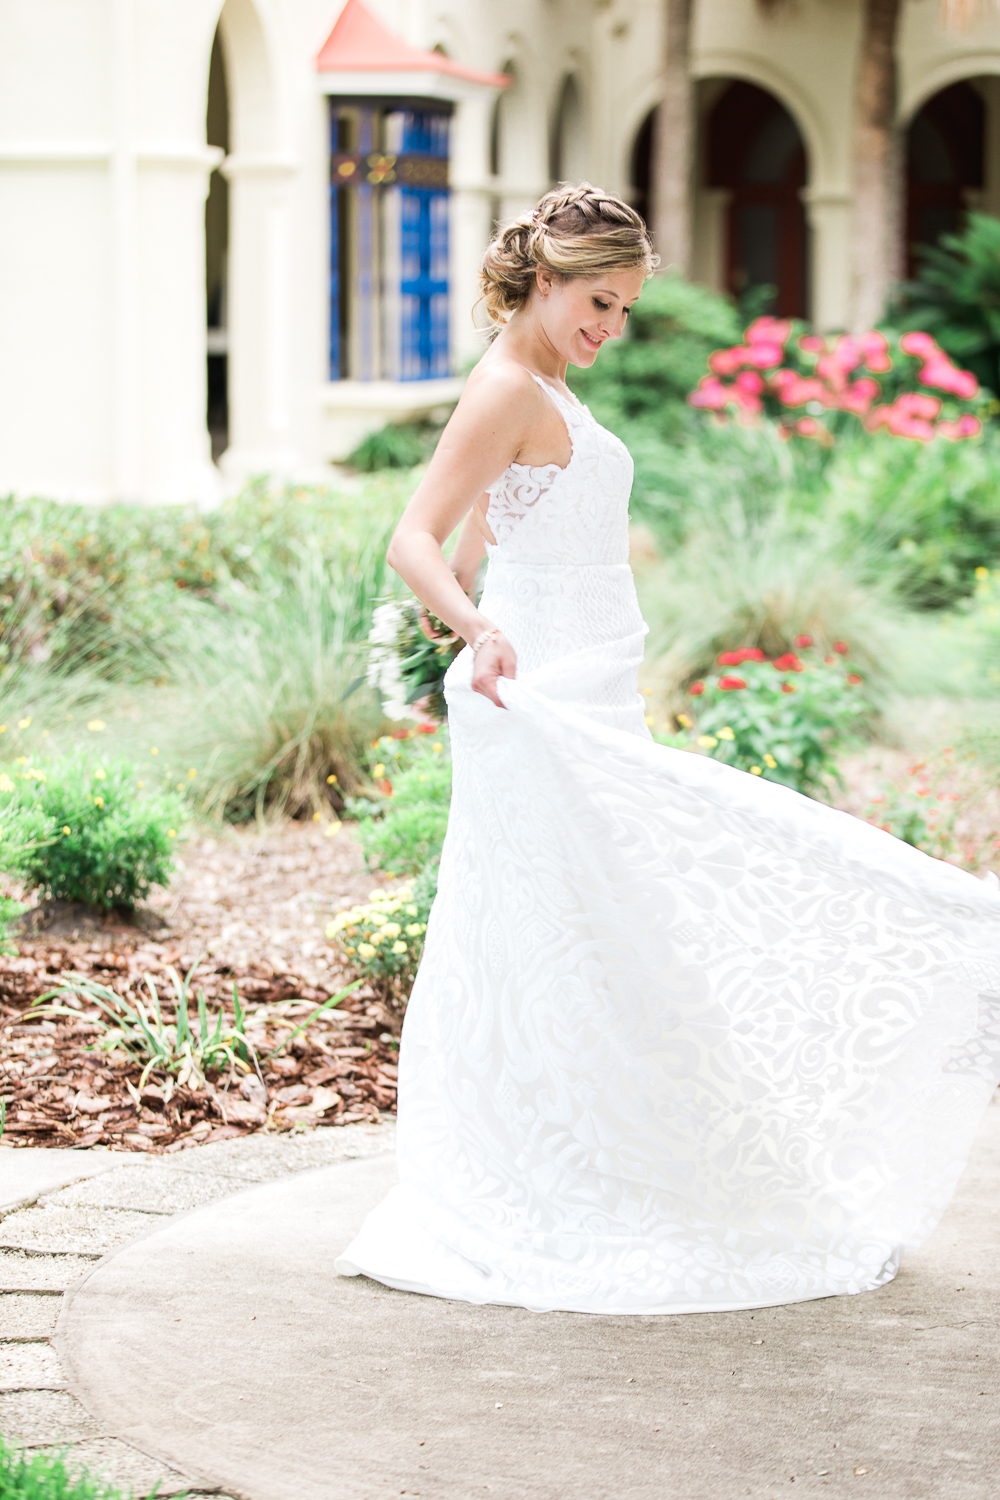 Bride twirling around in the streets of St.Augustine